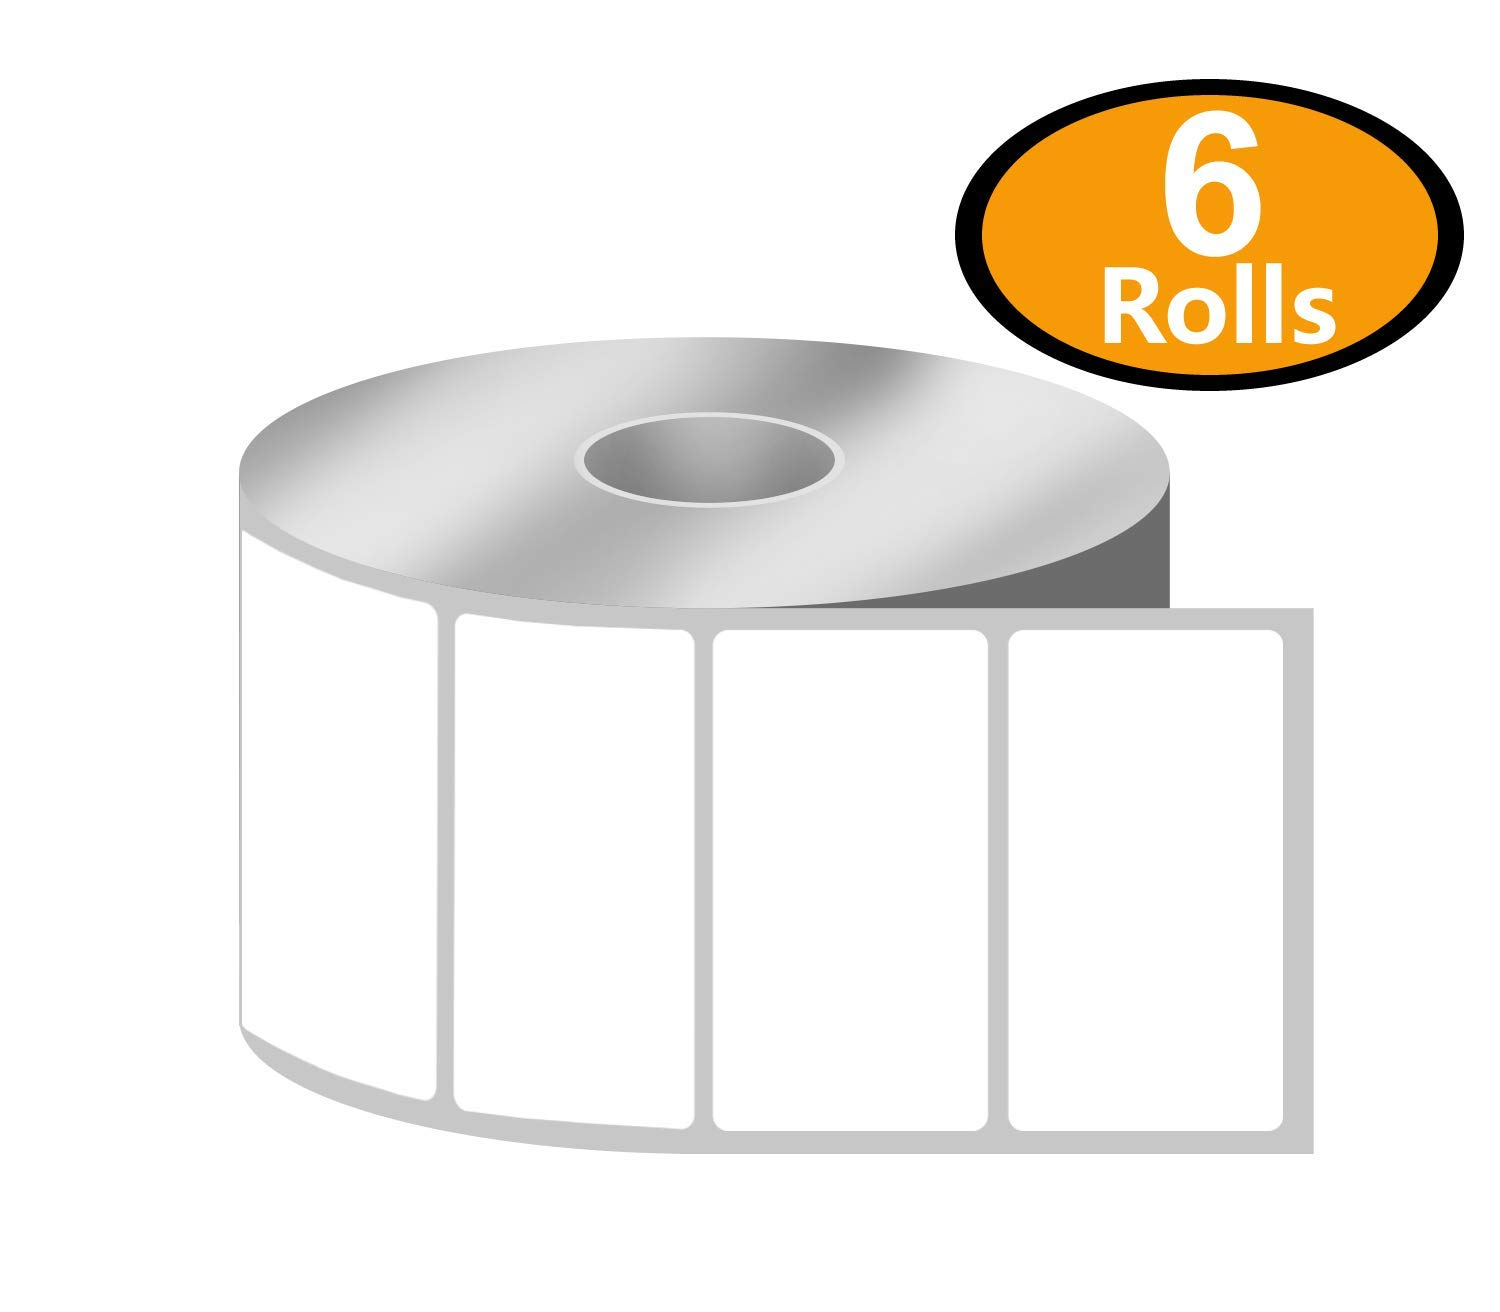 [10 Rolls, 750/Roll] 2 x 2 Direct Thermal Zebra/Eltron Compatible Labels - Premium Resolution & Adhesive BETCKEY